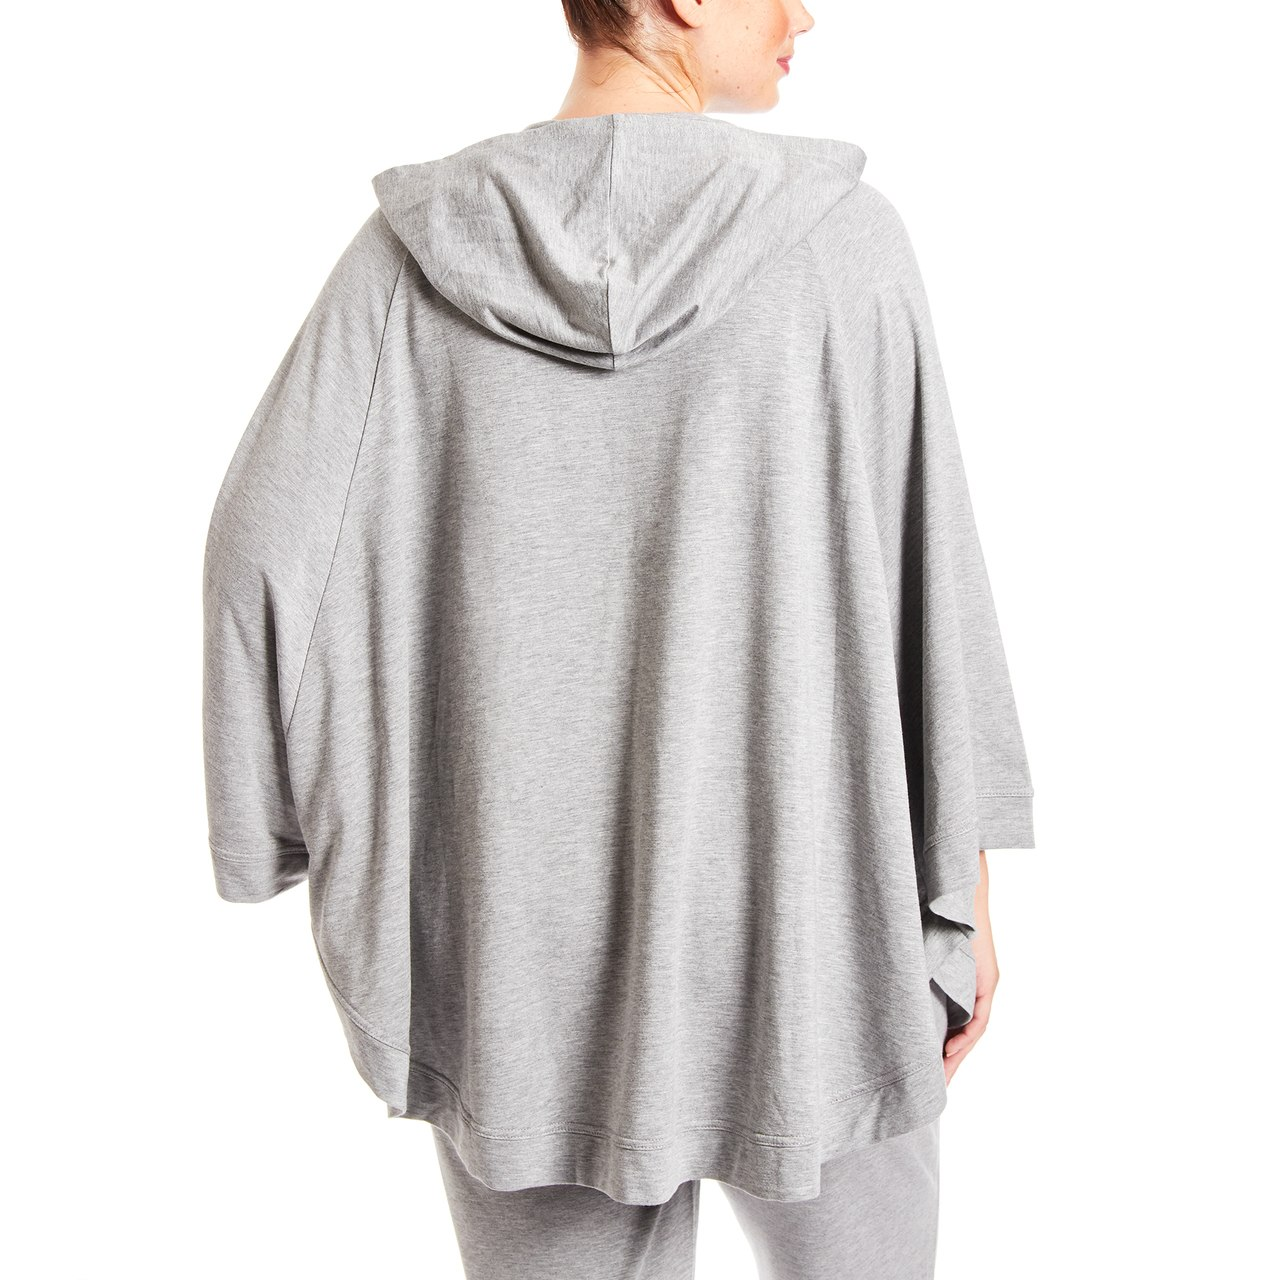 Curvy Hooded Poncho With Pocket In Heather Grey